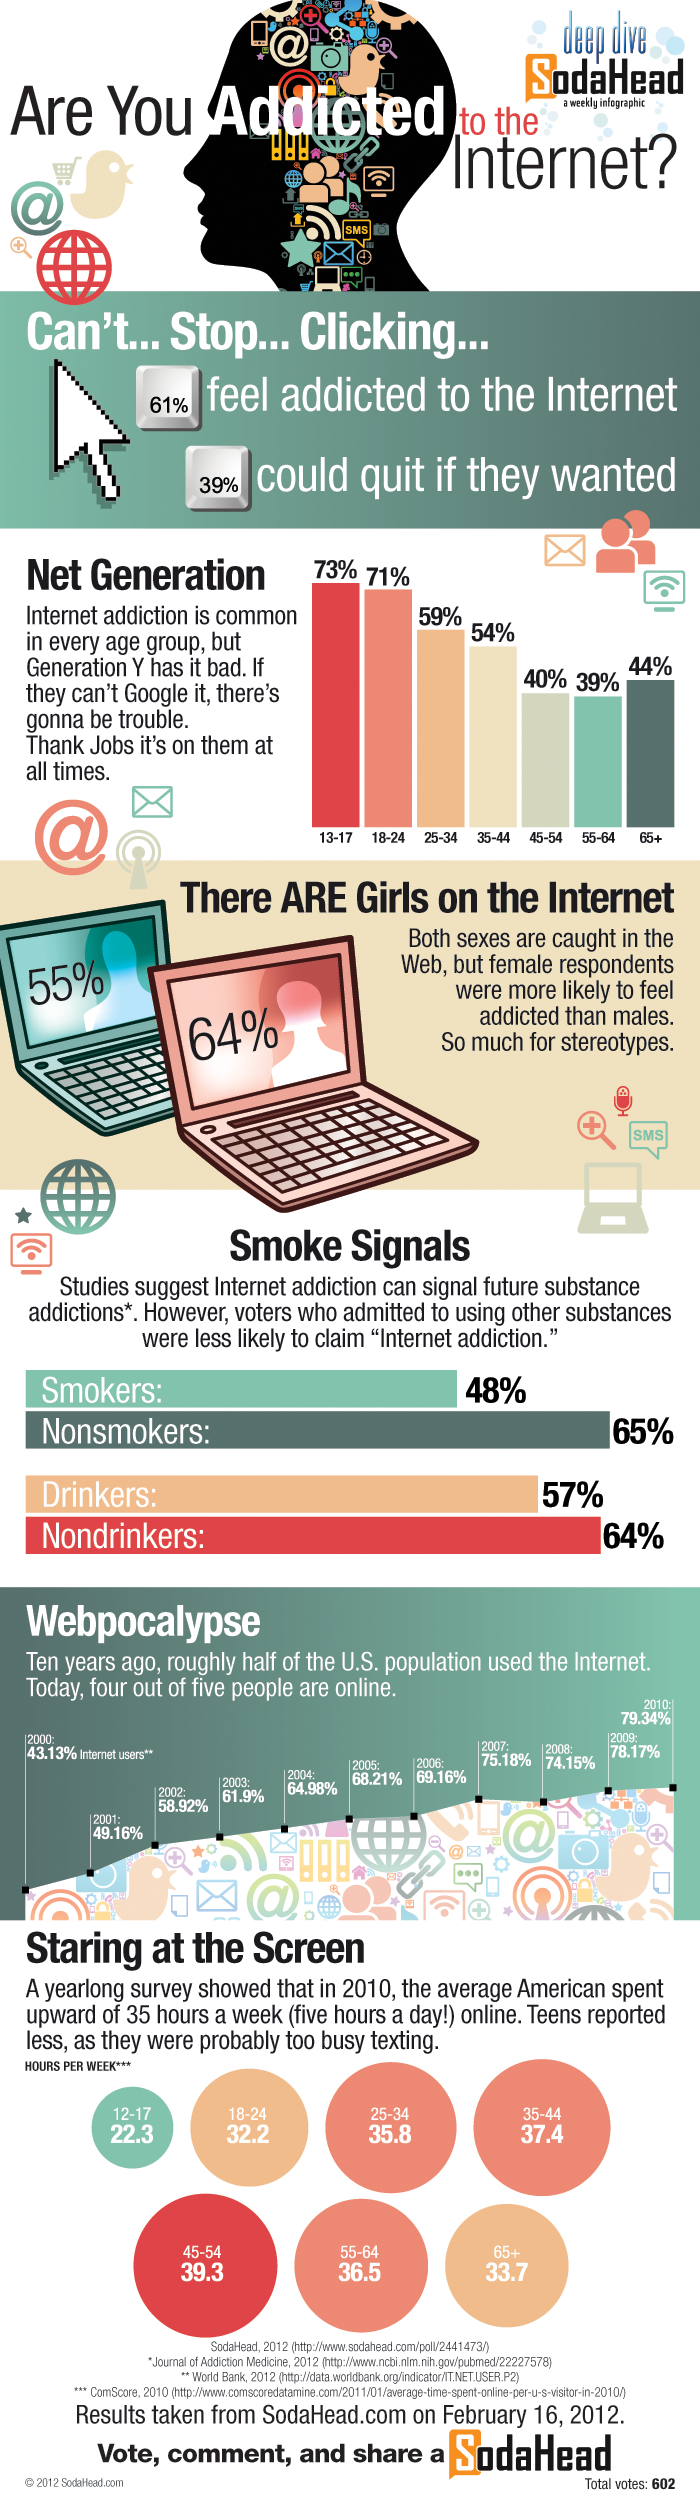 Extent of Internet addiction